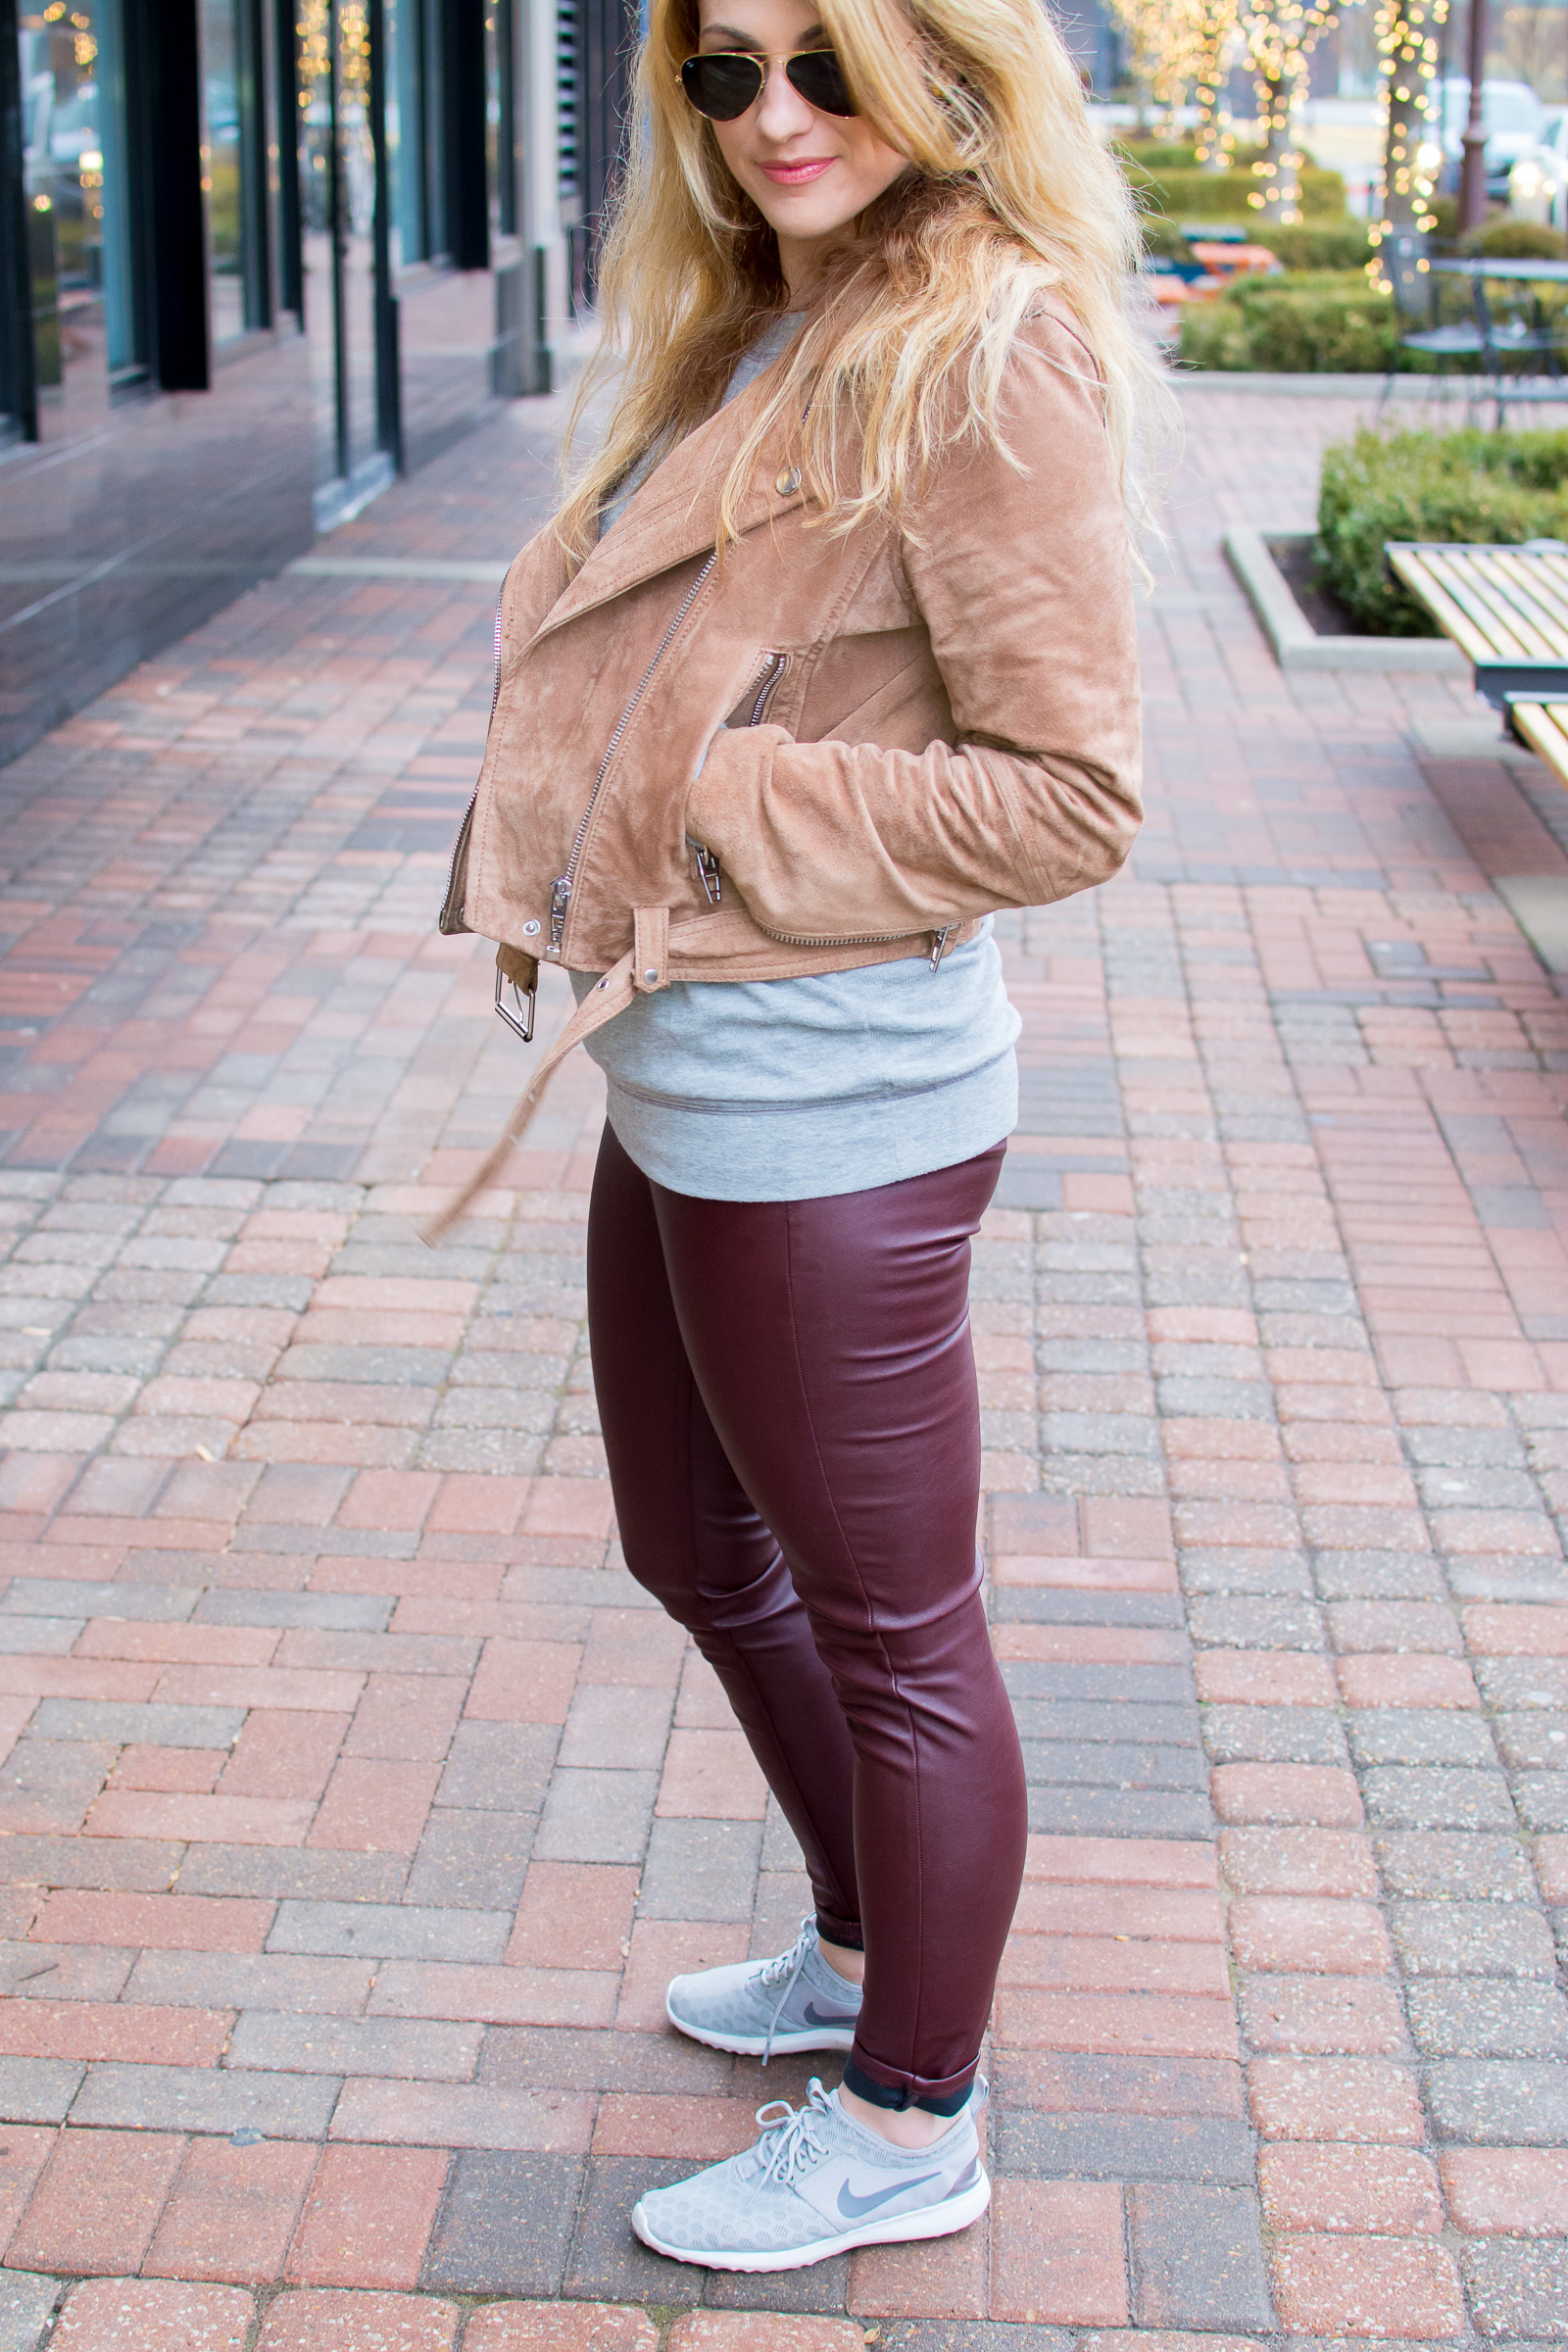 Ashley from LSR in a Blank NYC suede jacket, faux leather leggings, and sneakers